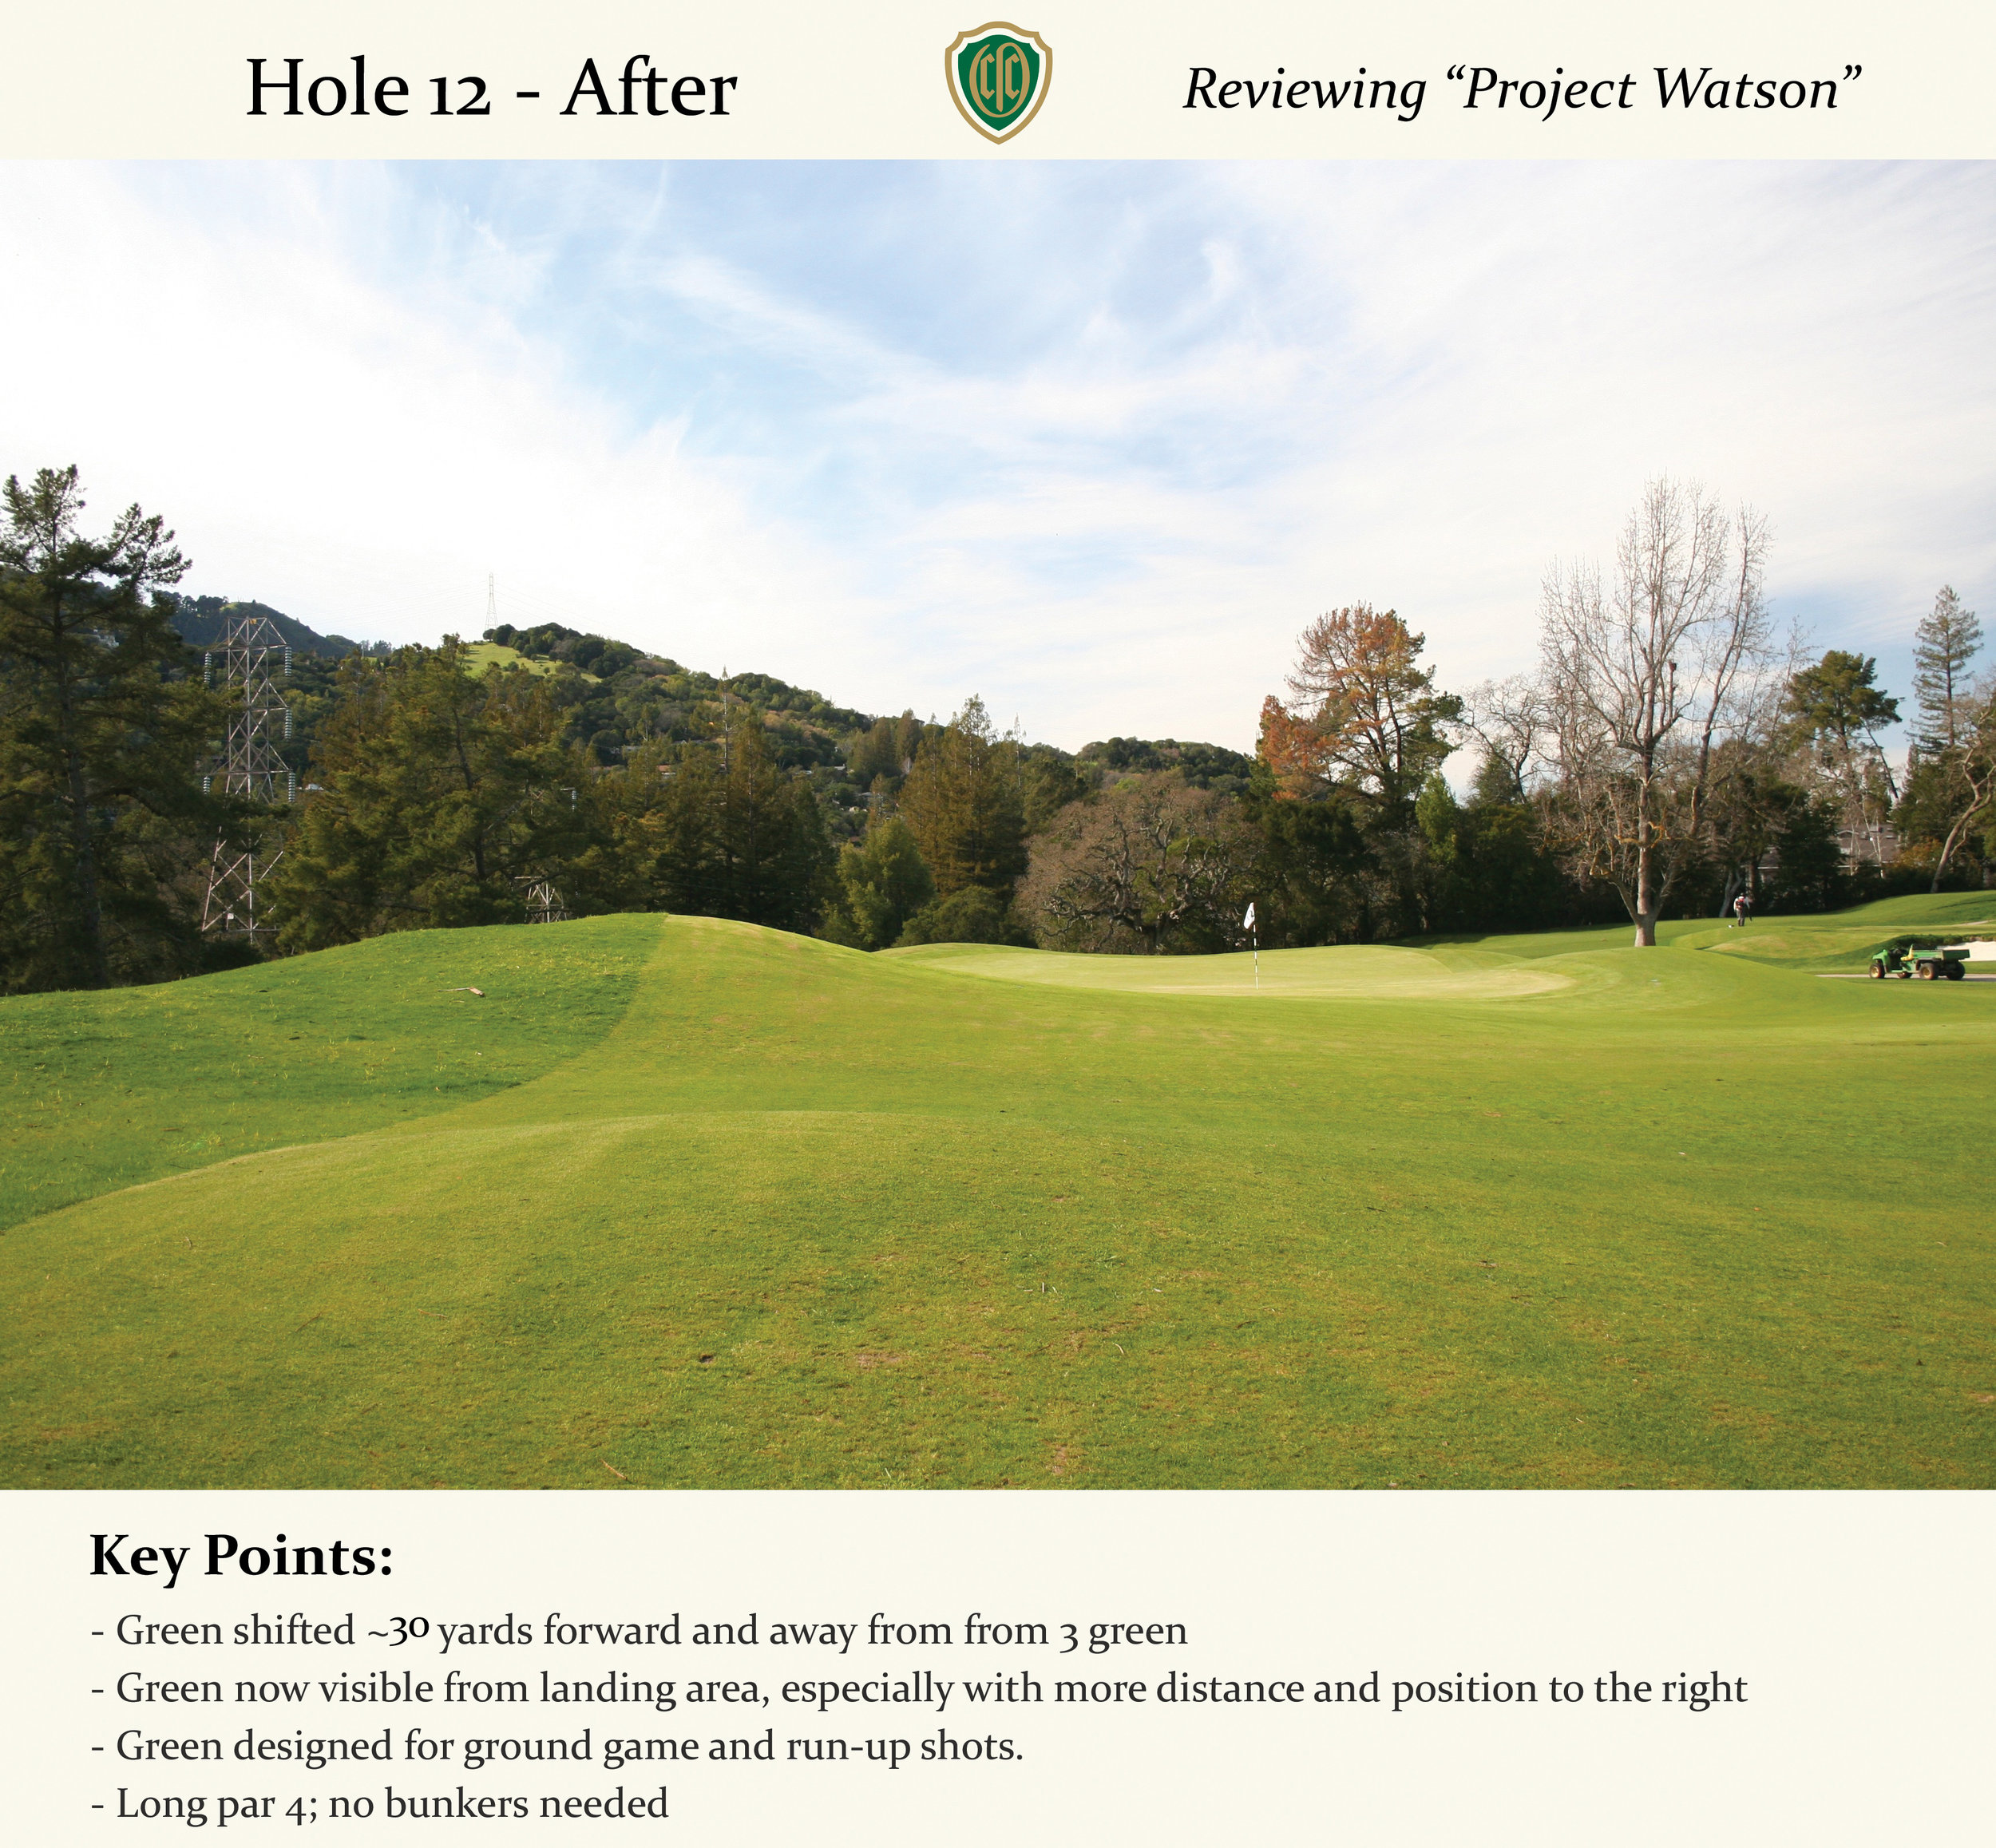 """Now a long par 4, attacking the bunkerless green complex with a running shot is a fun exercise. Play it off the left kicker but don't veer too far to the big dropoff. A safe bailout right leaves a tricky up and down over the right side contours, which, if you are on line with your approach, will help you stay on the green. They are both """"helping"""" and """"hurting"""" contours."""